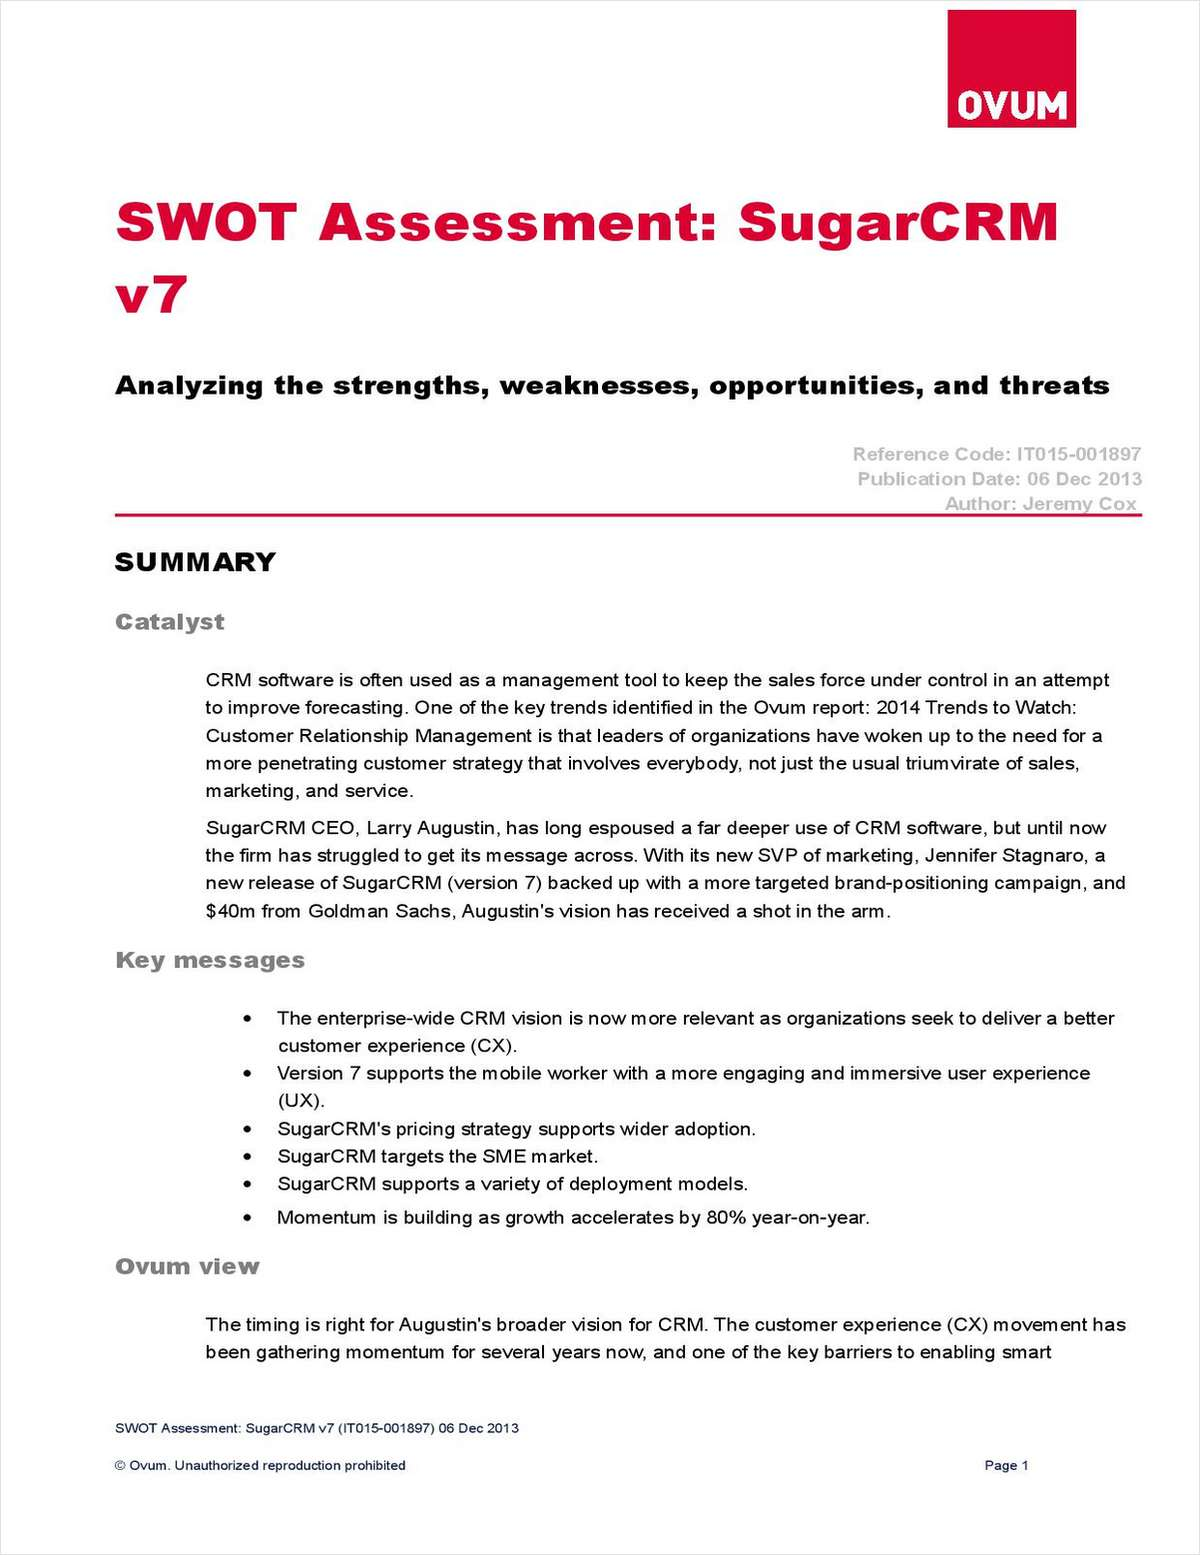 Learn Why Analyst Firm Ovum Names SugarCRM a Leading CRM